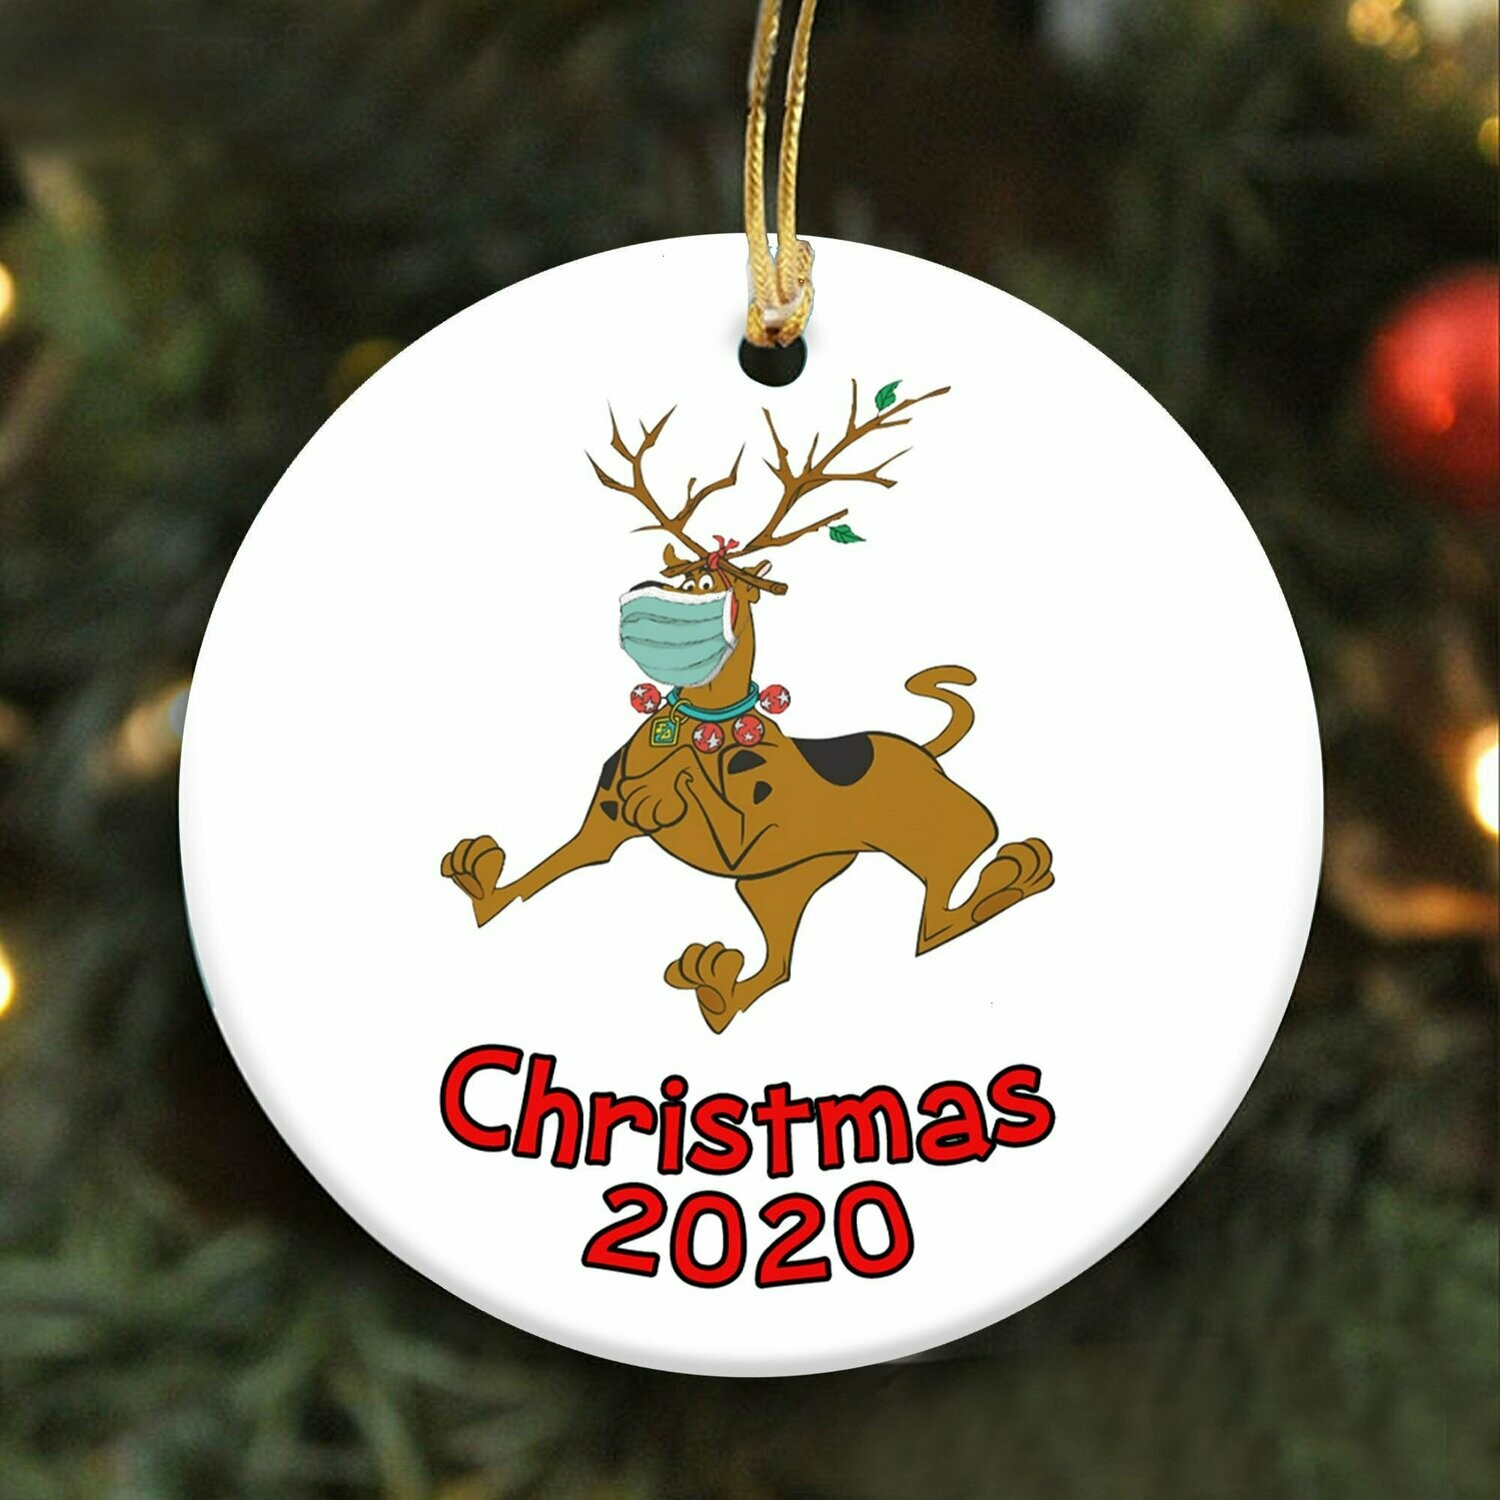 2020 Christmas Scooby Doo Christmas 2020 Ornament Social Distancing Quarantine Ornament Christmas Gifts